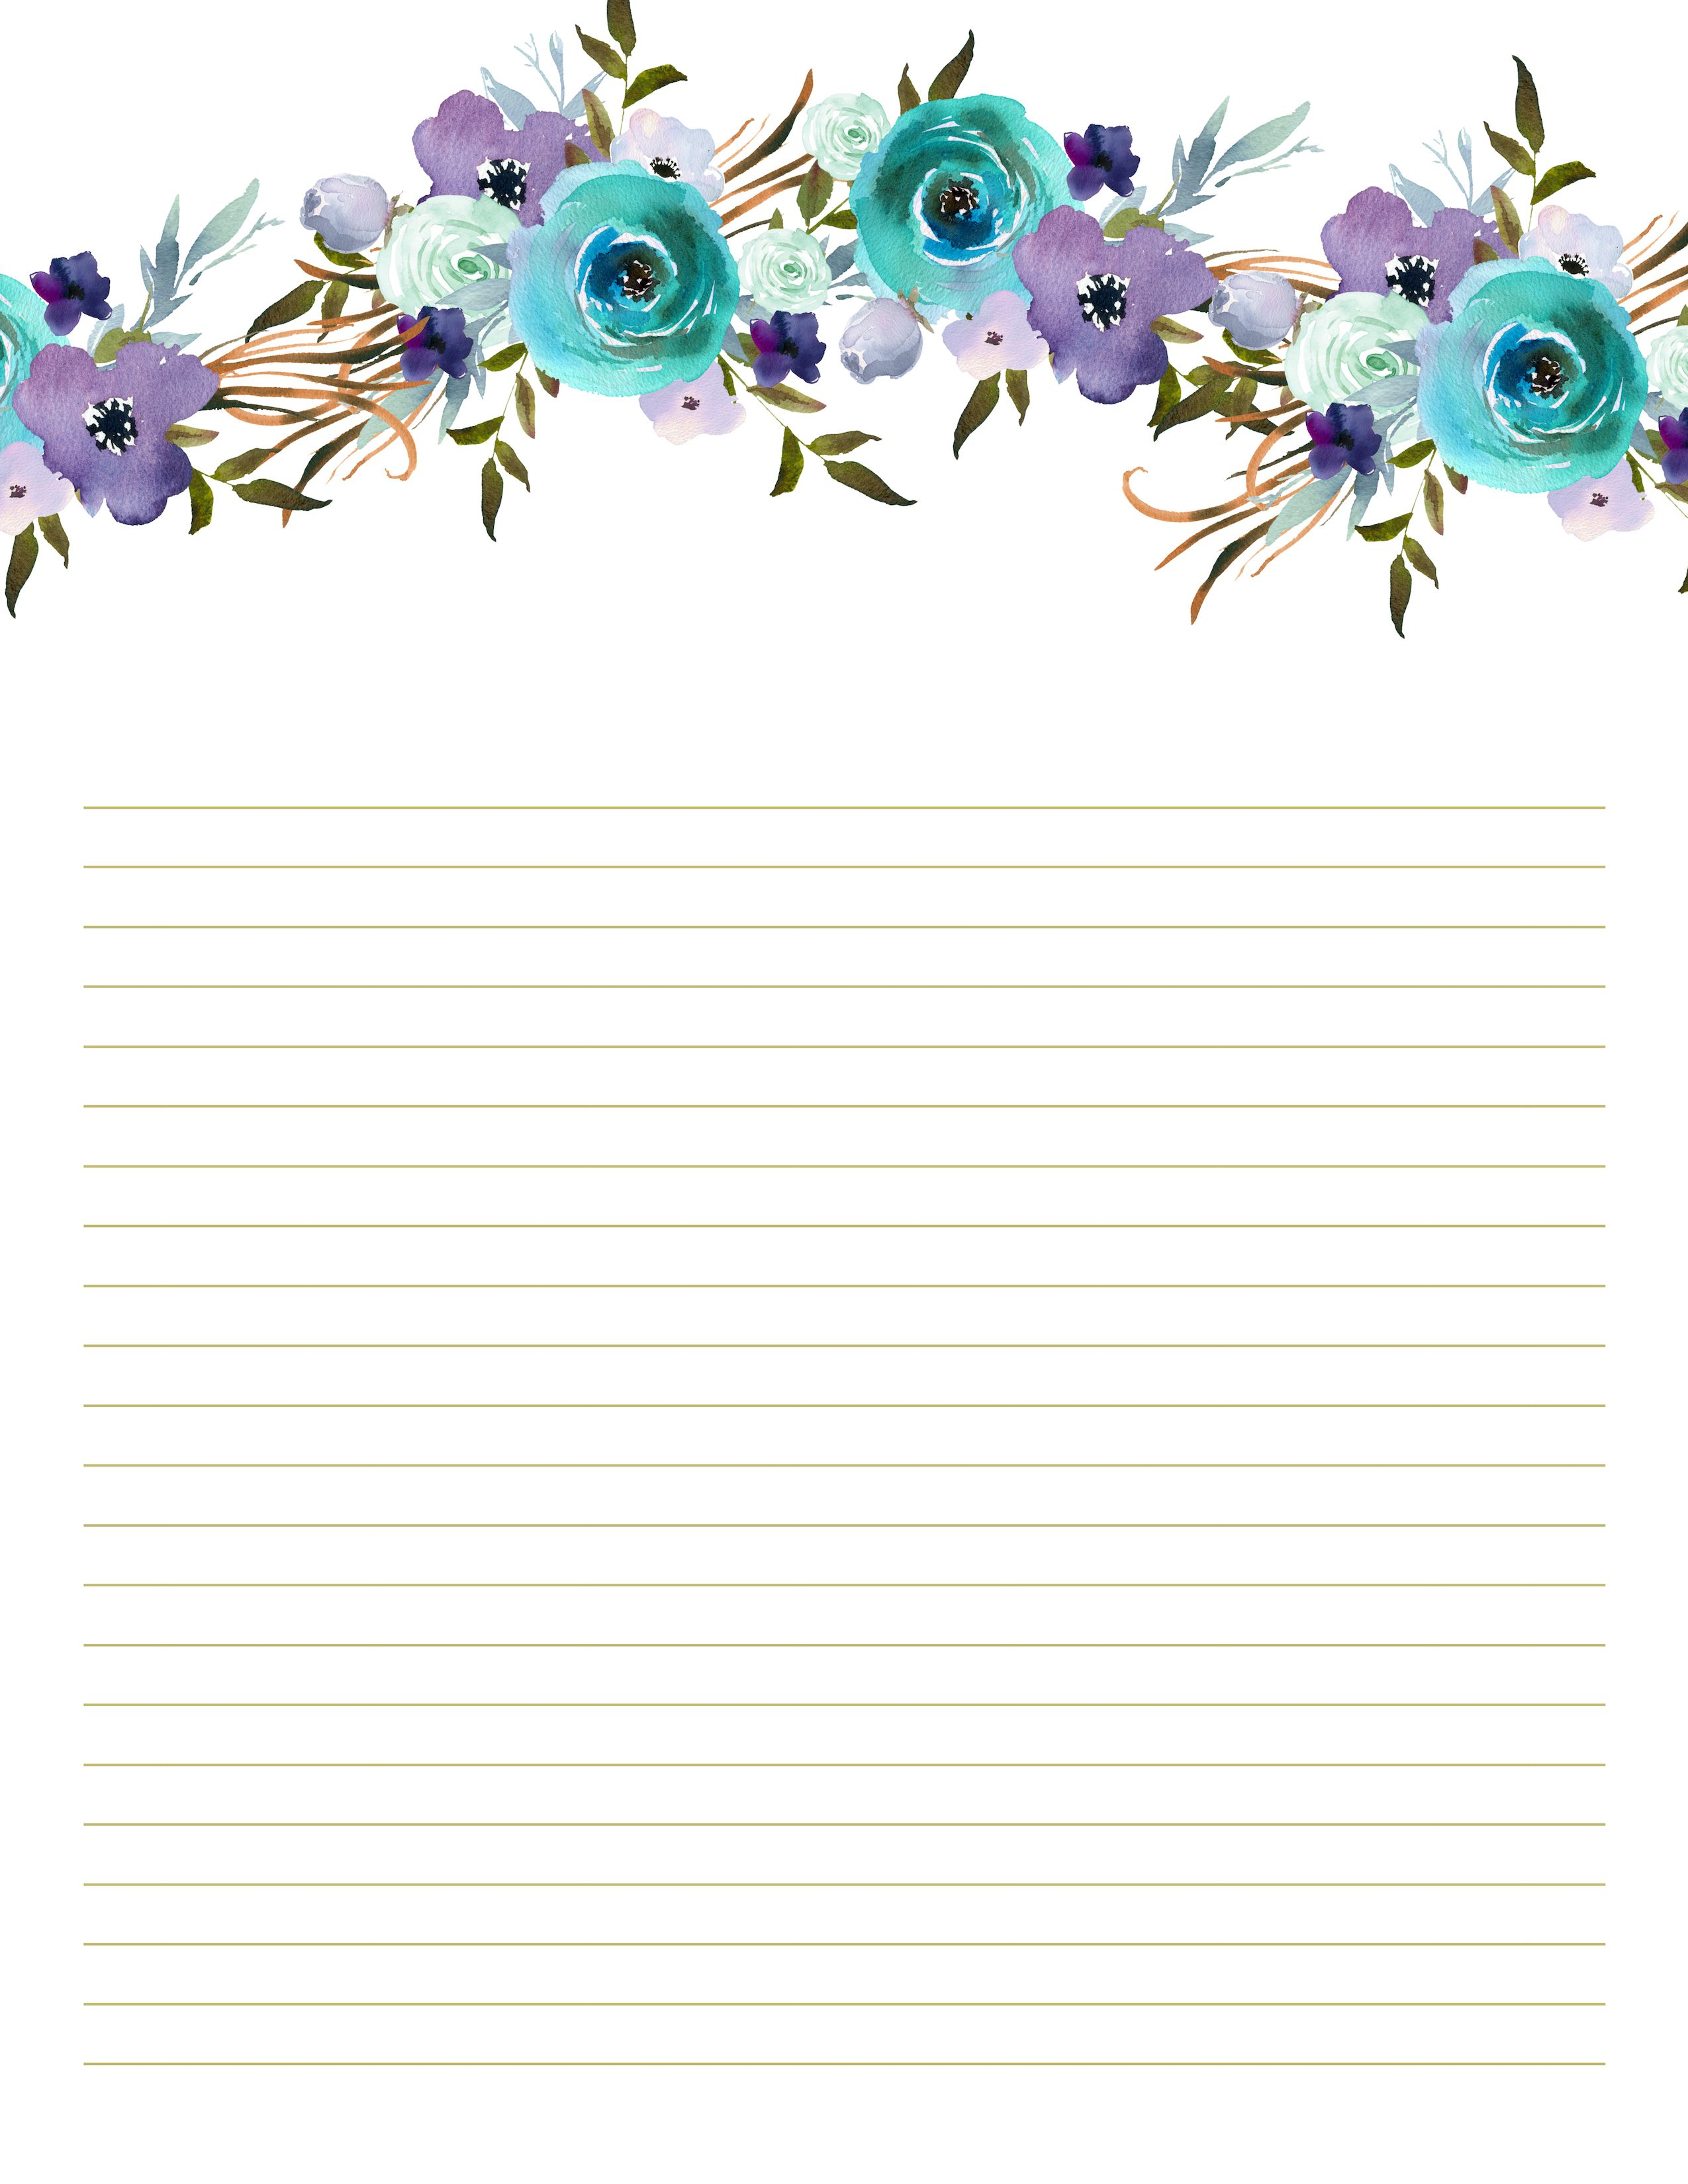 Rustic Floral Printable Letter Writing Paper Set Printable Etsy In 2021 Writing Paper Printable Stationery Free Printable Stationery Letter Writing Paper Letter writing paper free printable